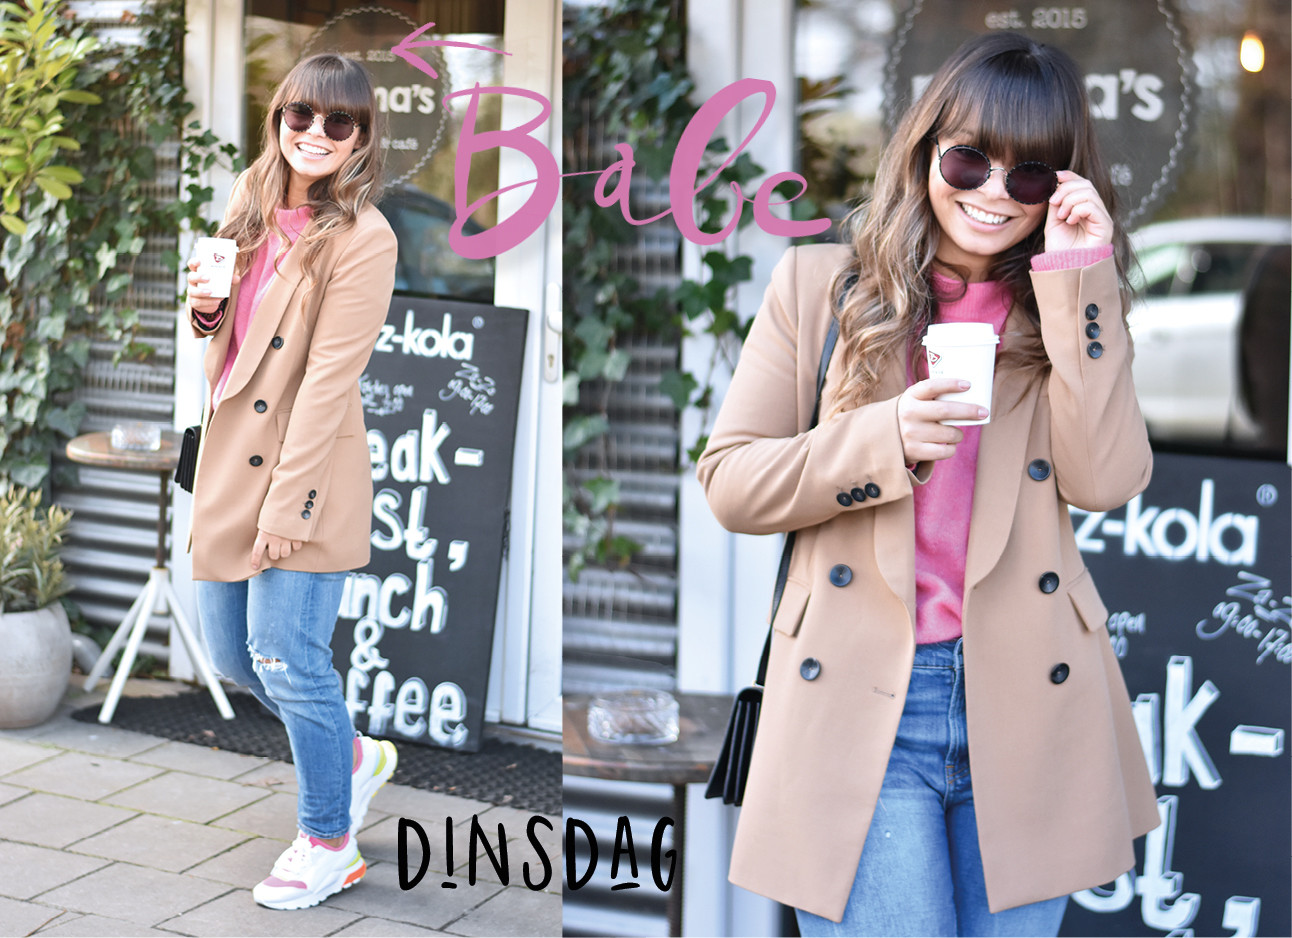 kiki duren standing outside holding coffee wearing coat, pink sweater and neon sneakers